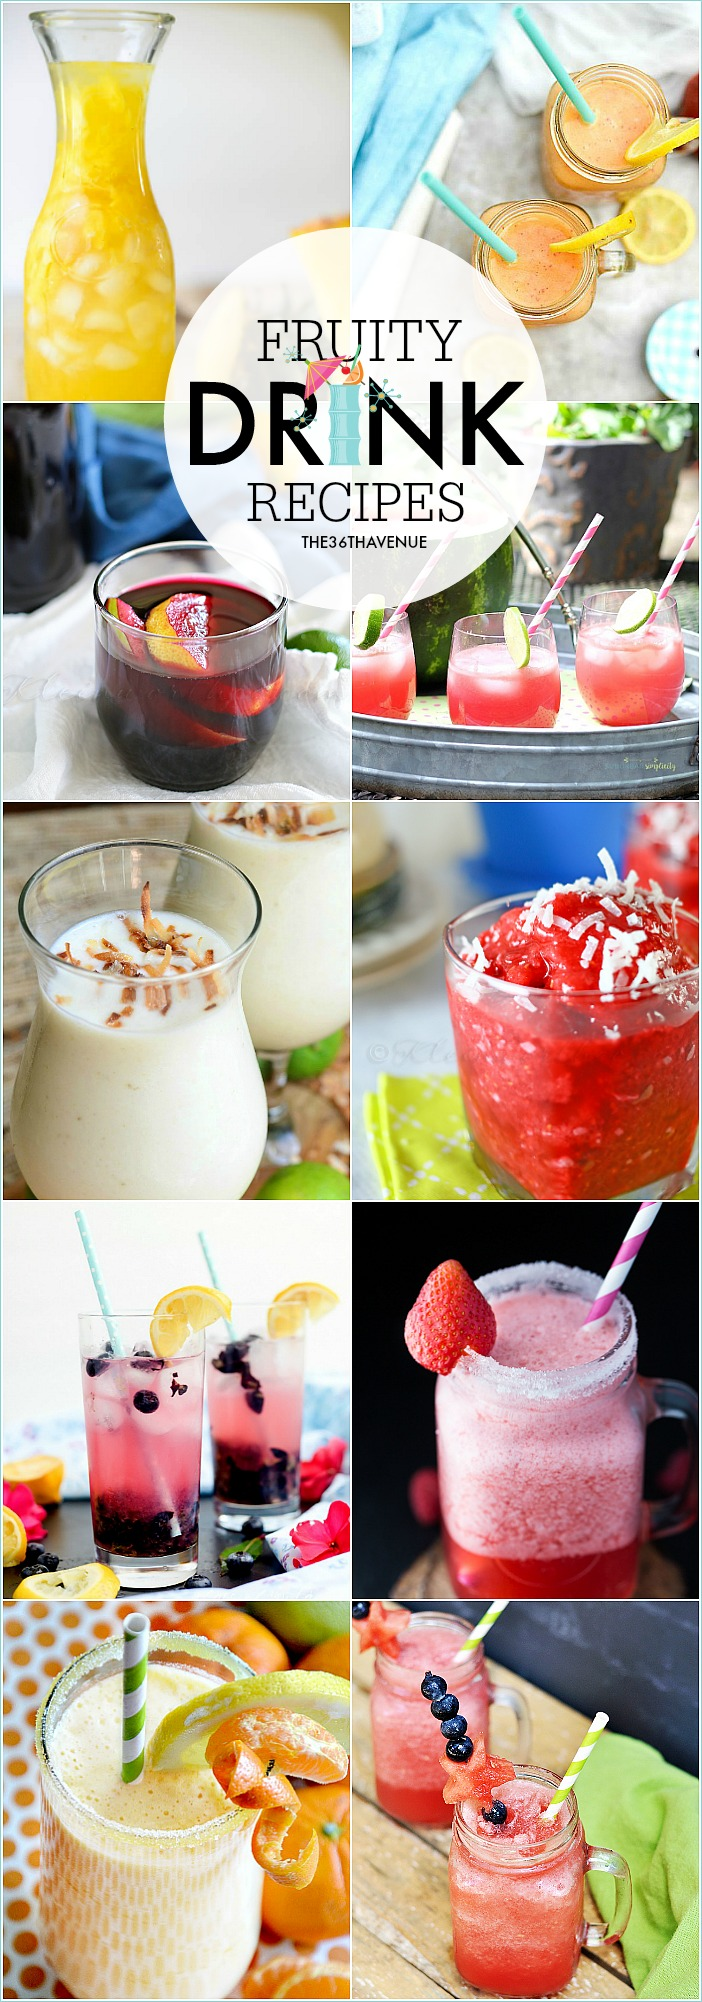 These Fruity Drink Recipes are packed with fresh delicious fruits. These are the perfect drinks to serve on a hot summer day.